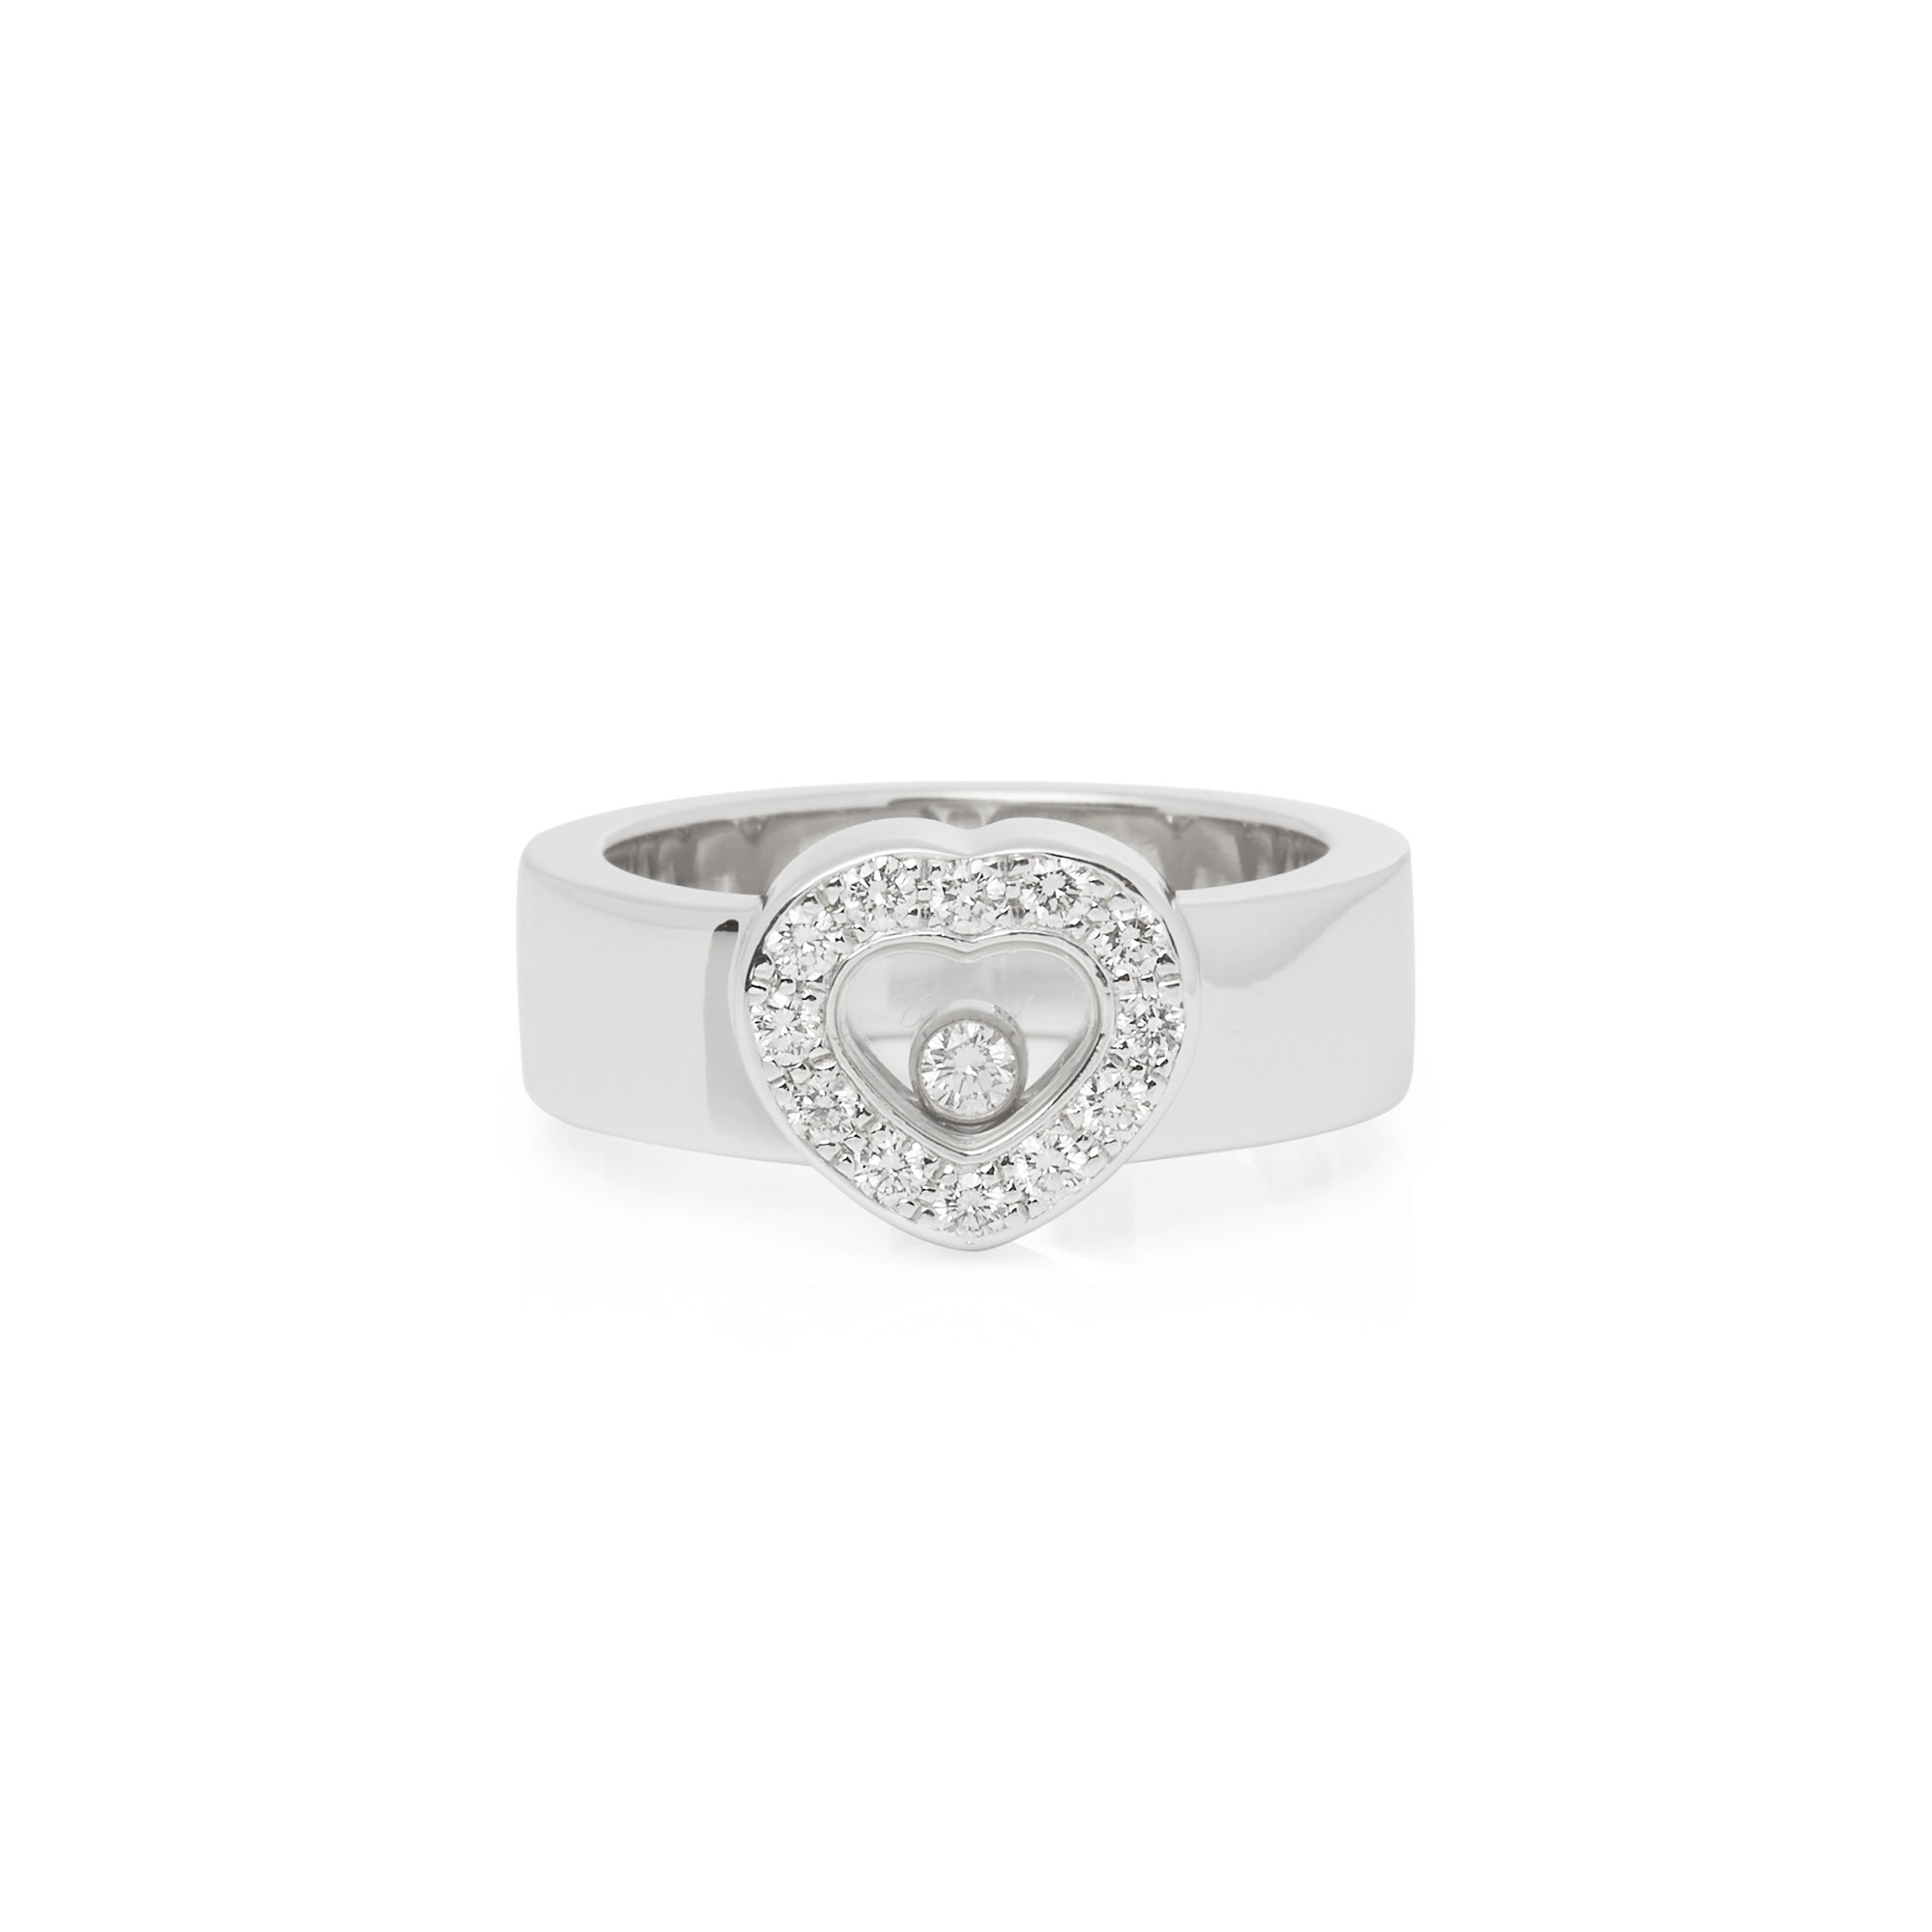 Chopard 18k White Gold Chopard Happy Diamonds Ring